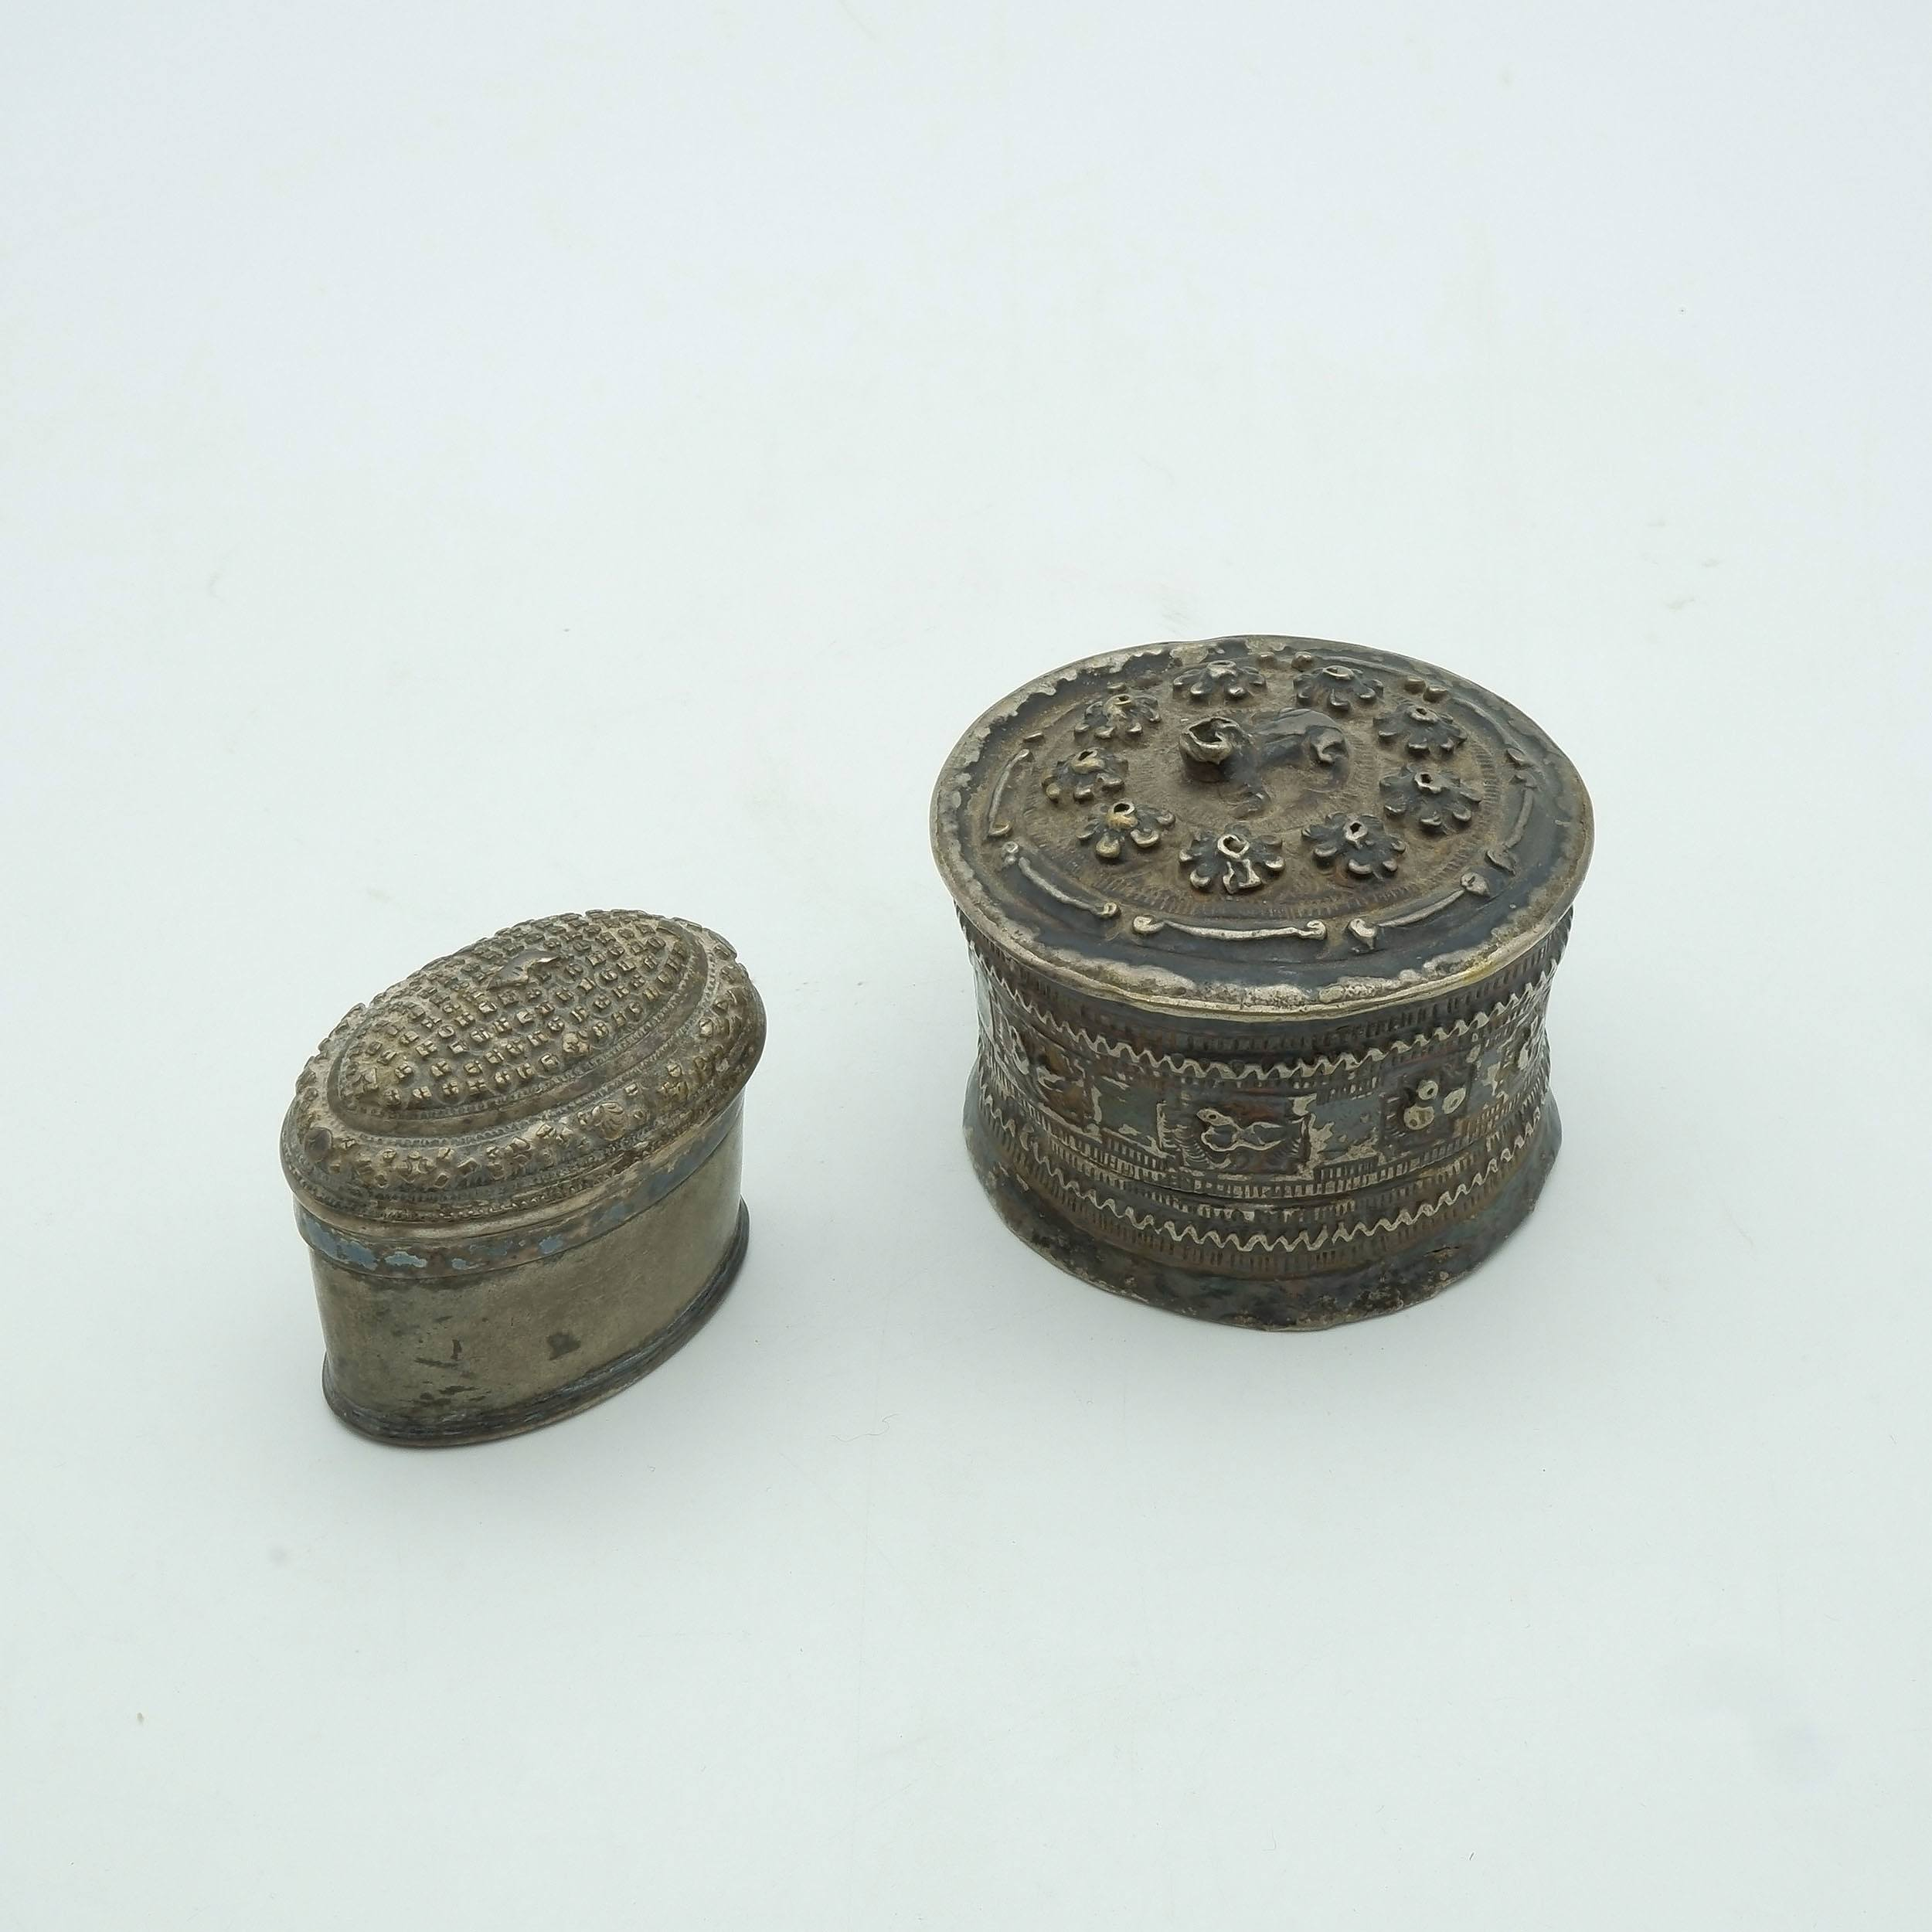 'Lao Silver Frog Drum Shaped Snuff Box and Lao Silver Oval Snuff Box'